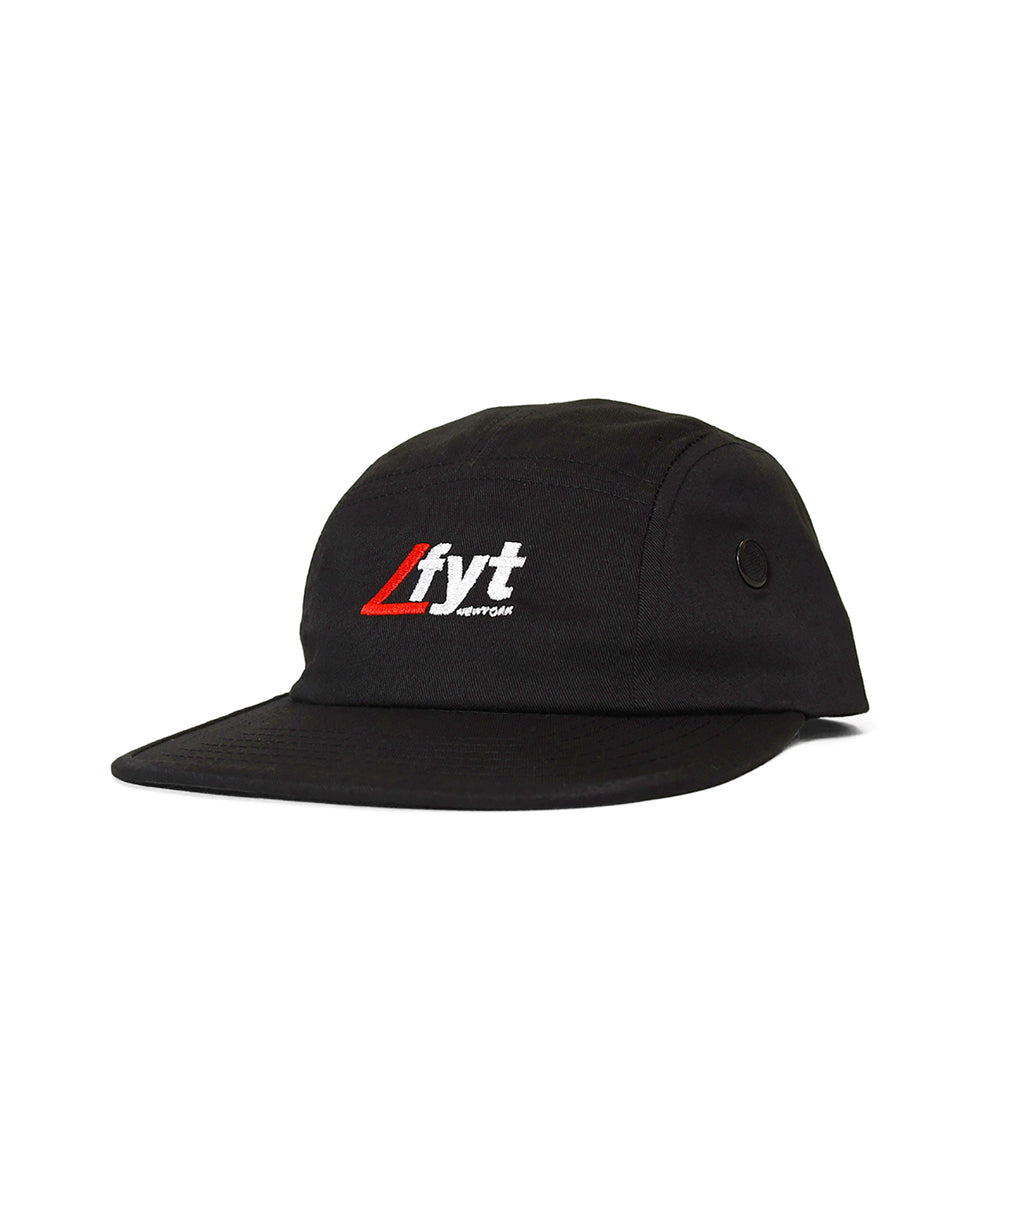 MOBILES LOGO CAMP CAP BLACK LA201401